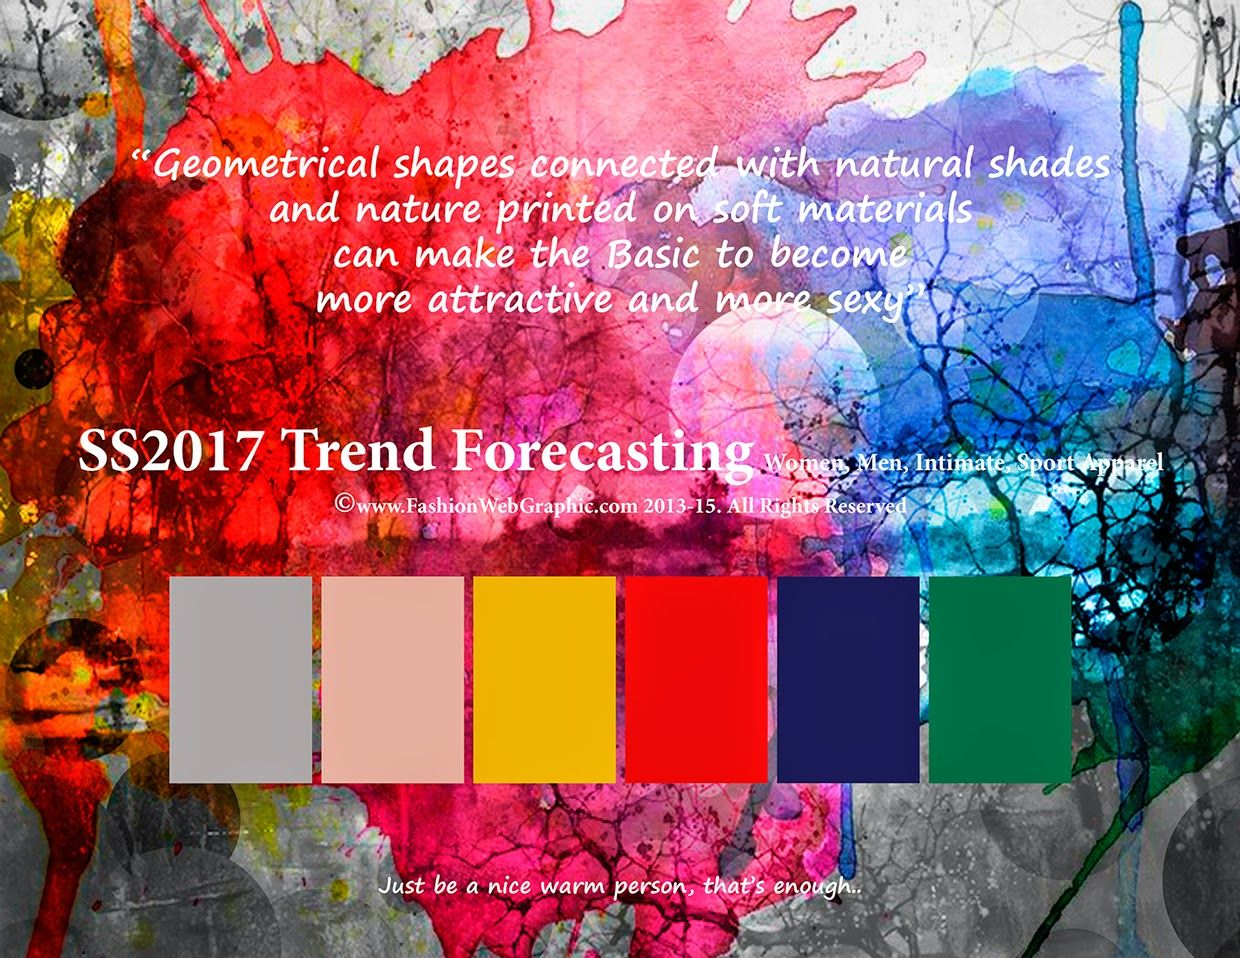 Popular color trends 2017 - Women Fashion Trends 2017 2018 Ss 2017 Trend Forecasting Women Men Intimate